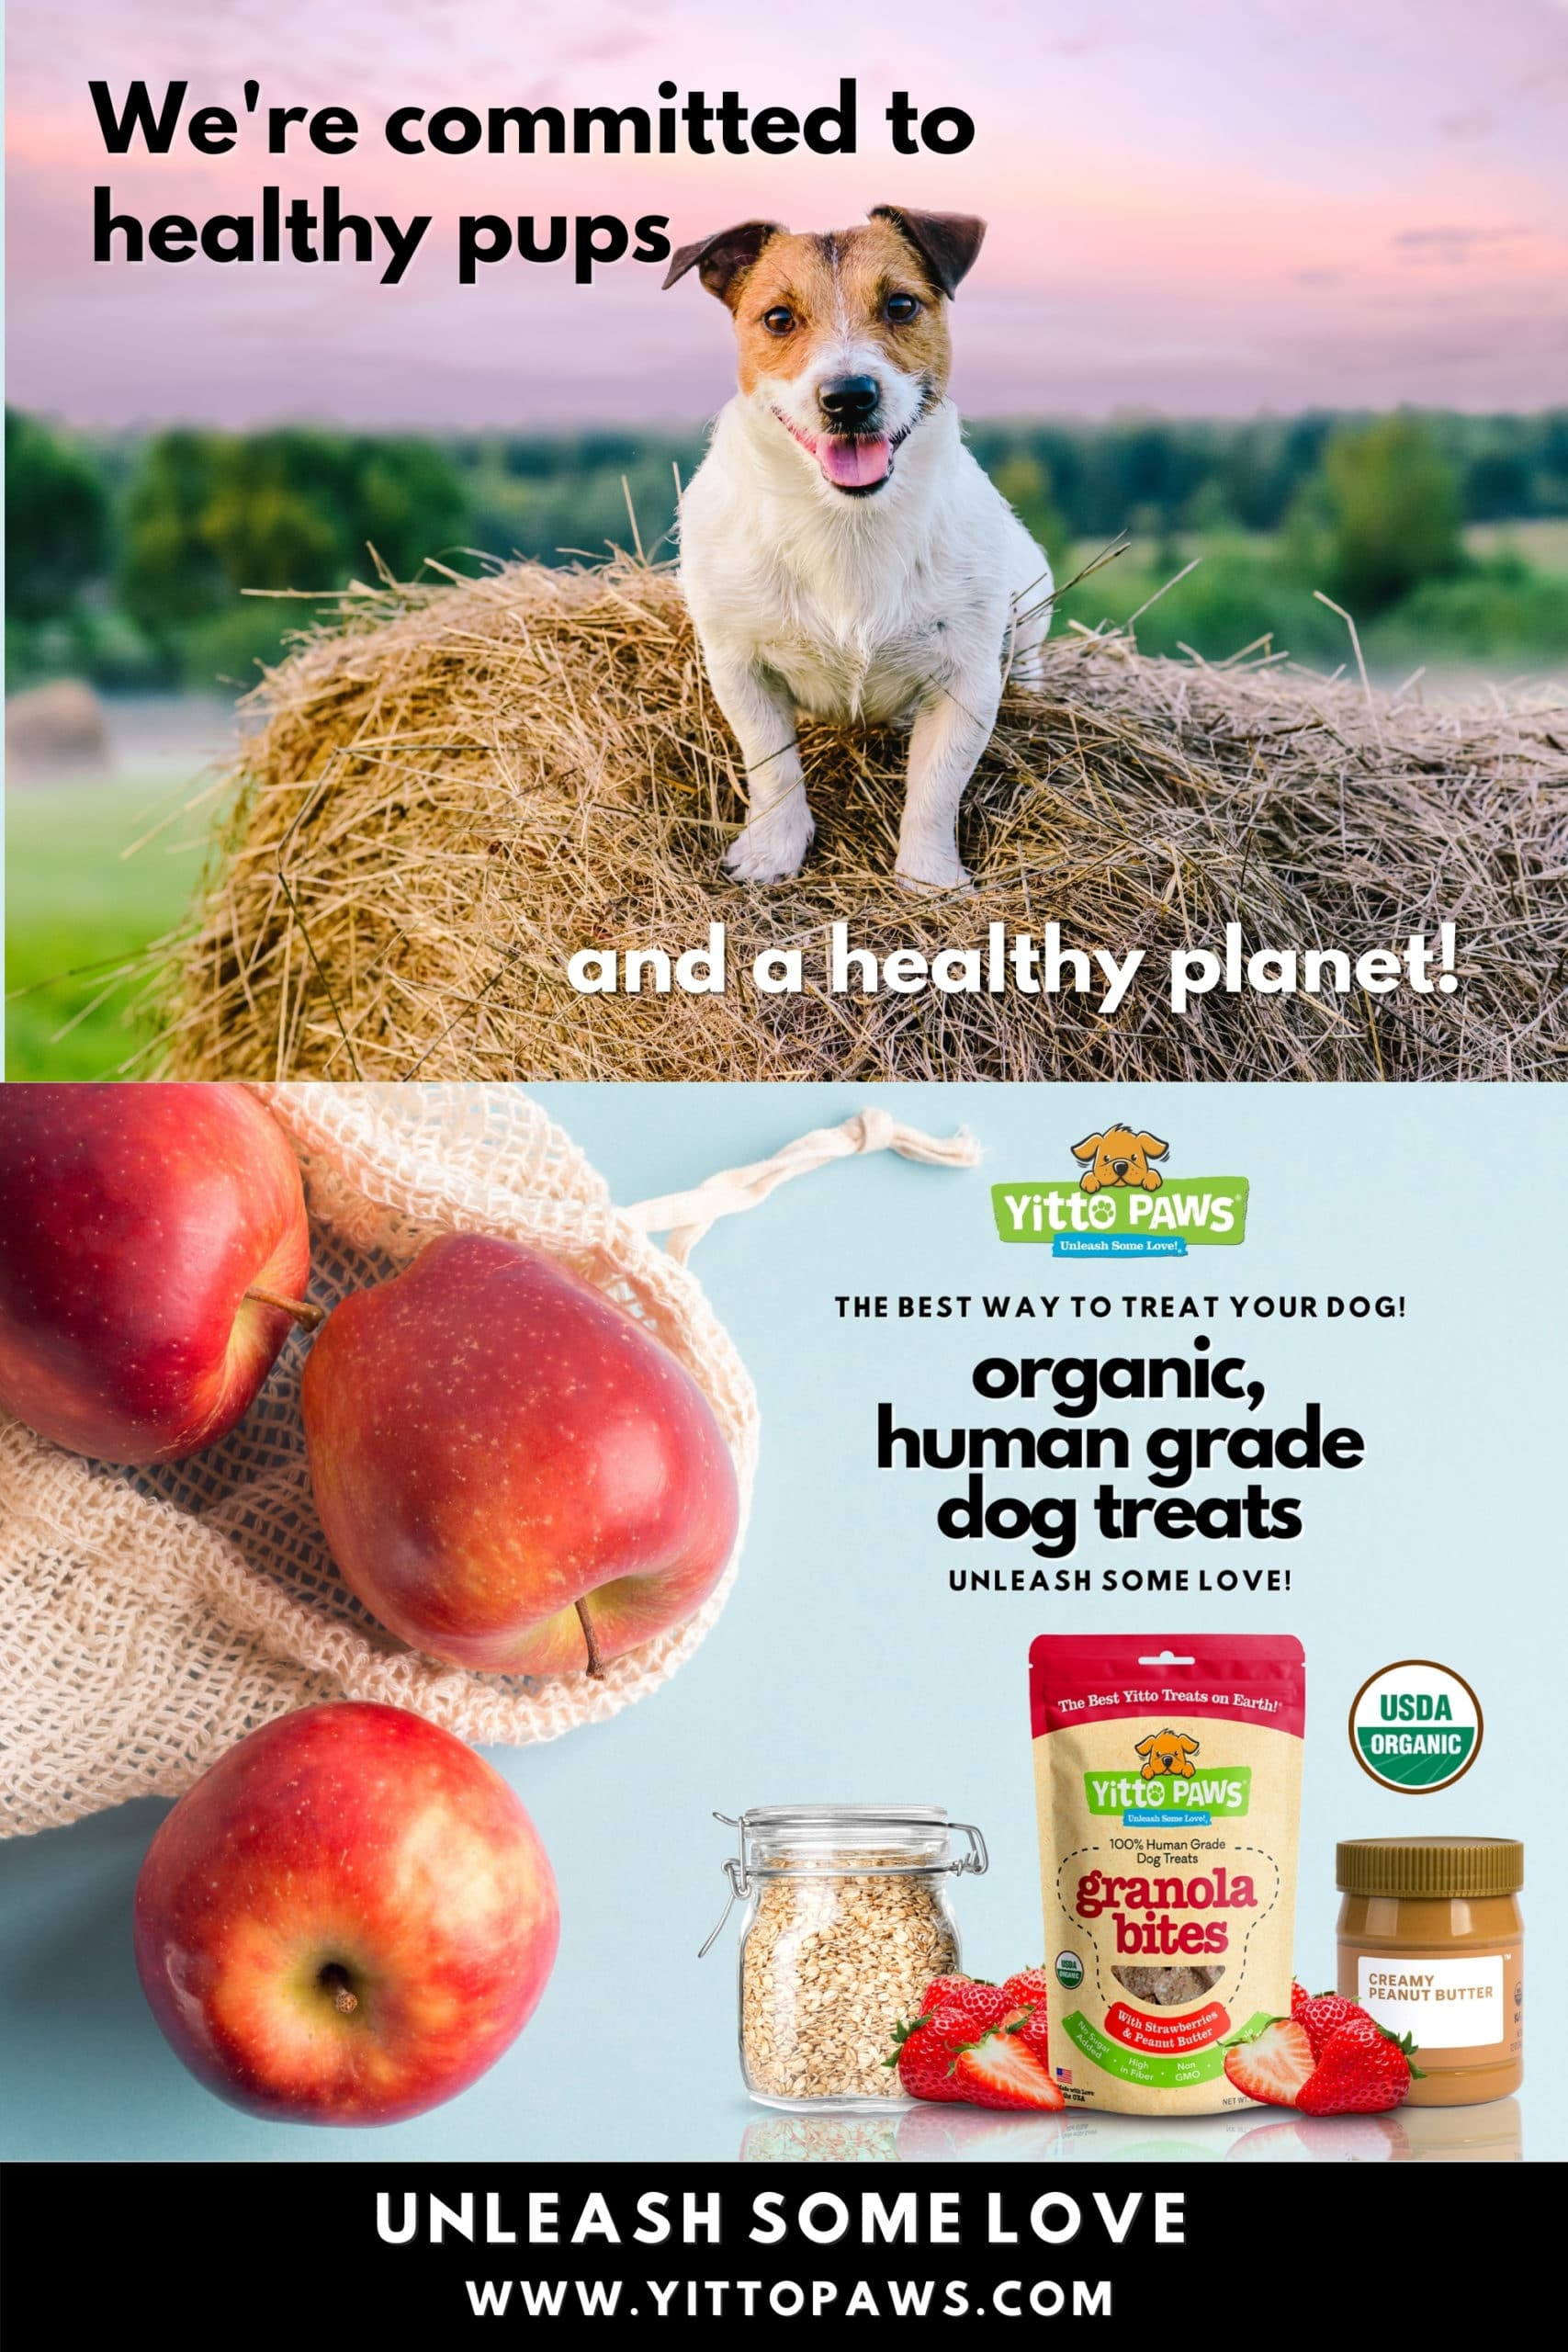 Supporting a Healthy Planet is central to all we do at Yitto Paws. We know our families and their dogs need a strong Mother Earth to thrive!